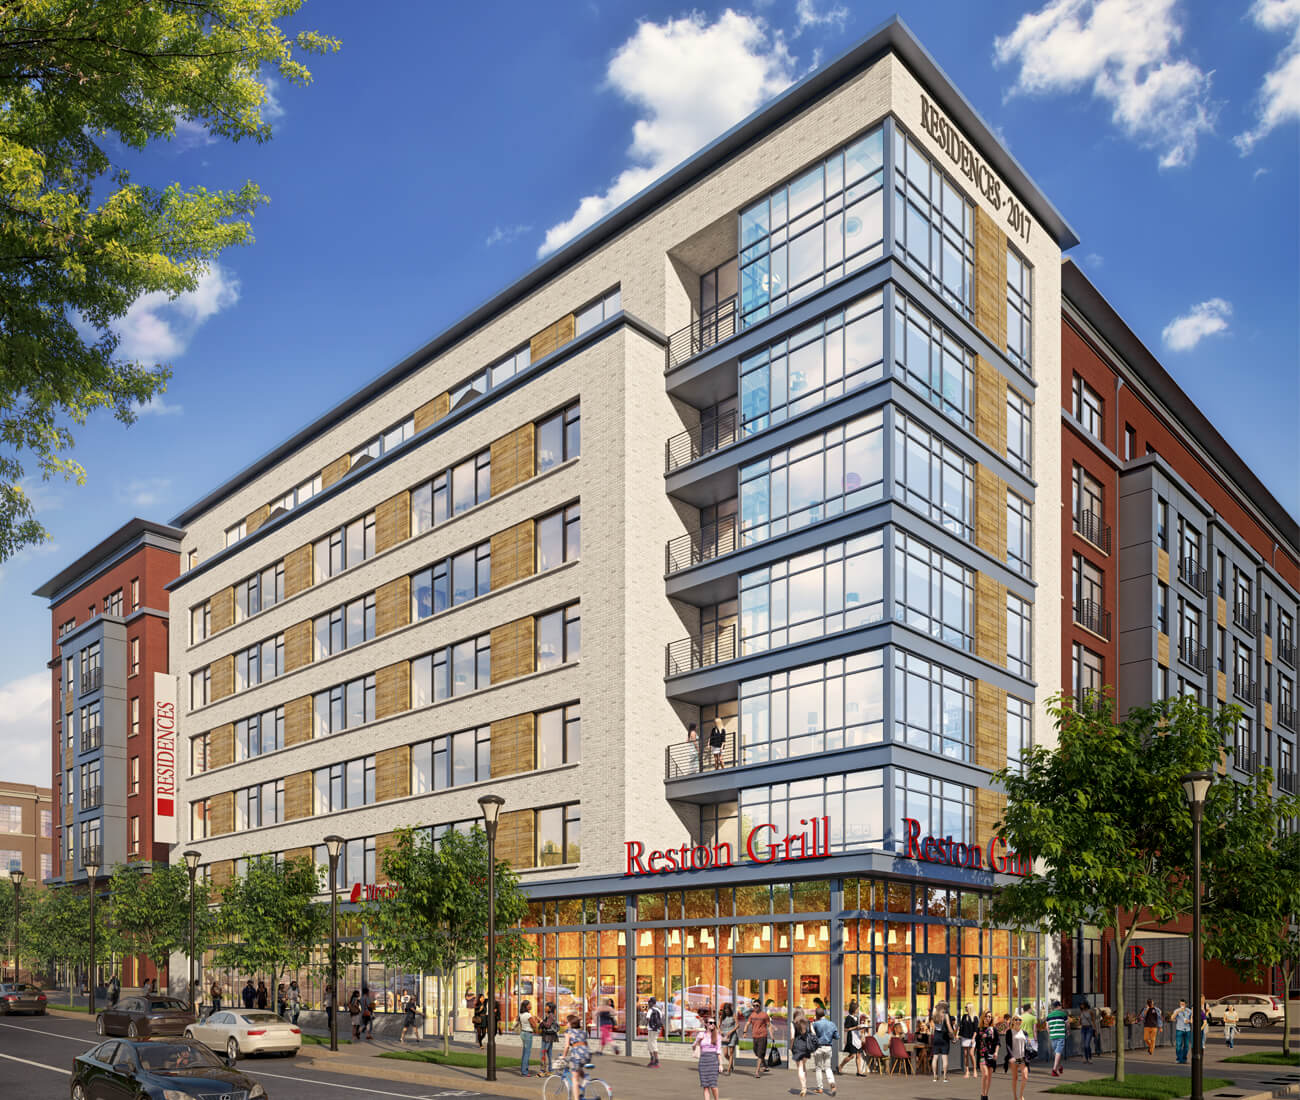 The 1831 Michael Faraday Drive multi-family project in Reston, VA